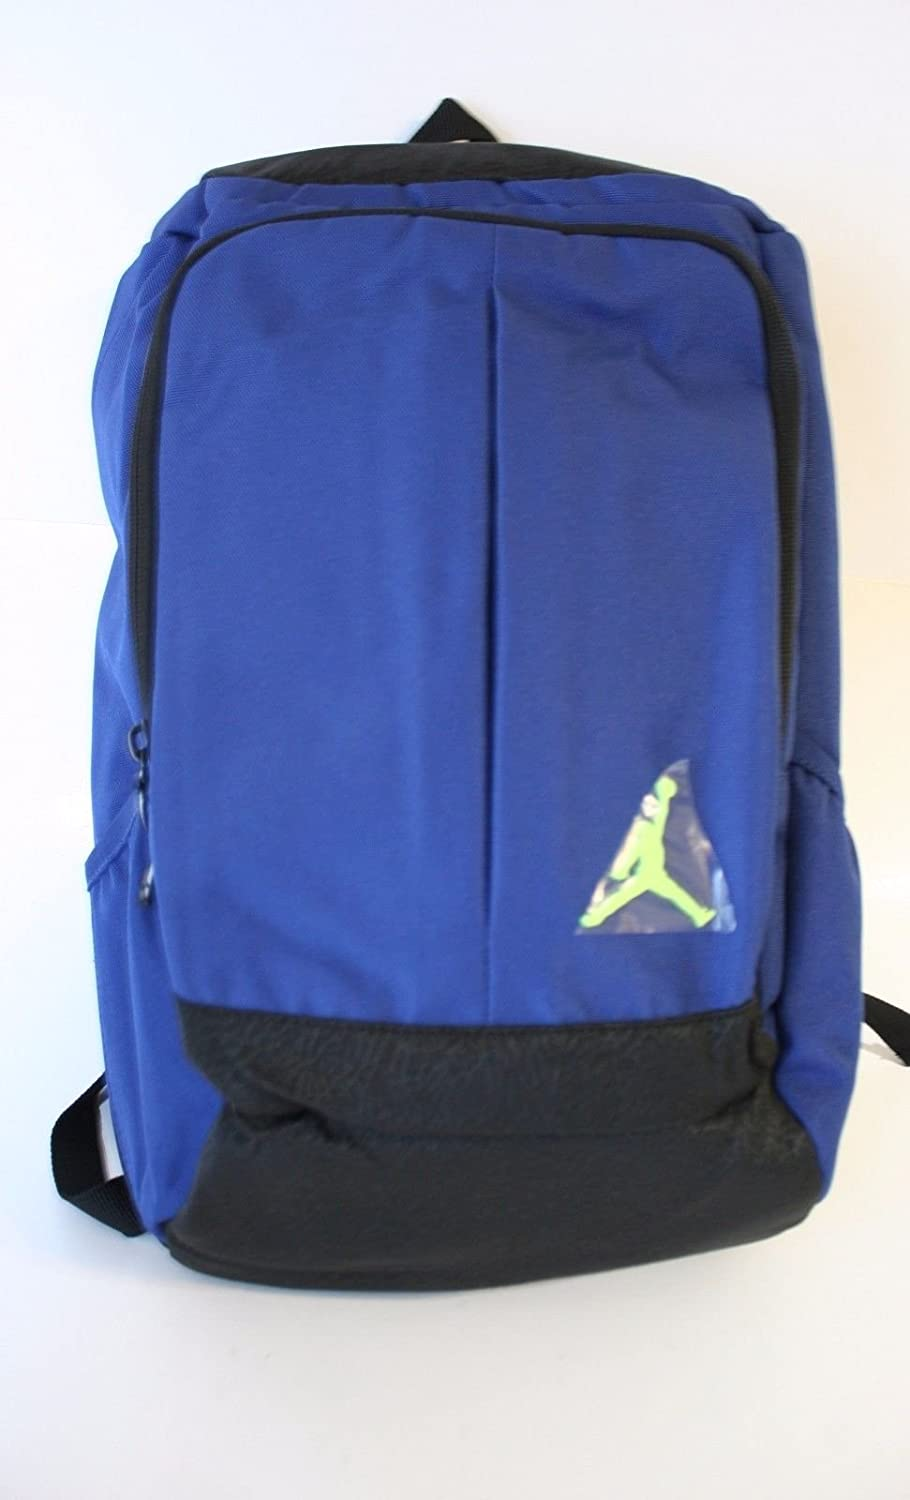 73fdadc3d752 Amazon.com  Nike Air Jordan Jumpman School Backpack Book Bag College Kids  Boys  Toys   Games